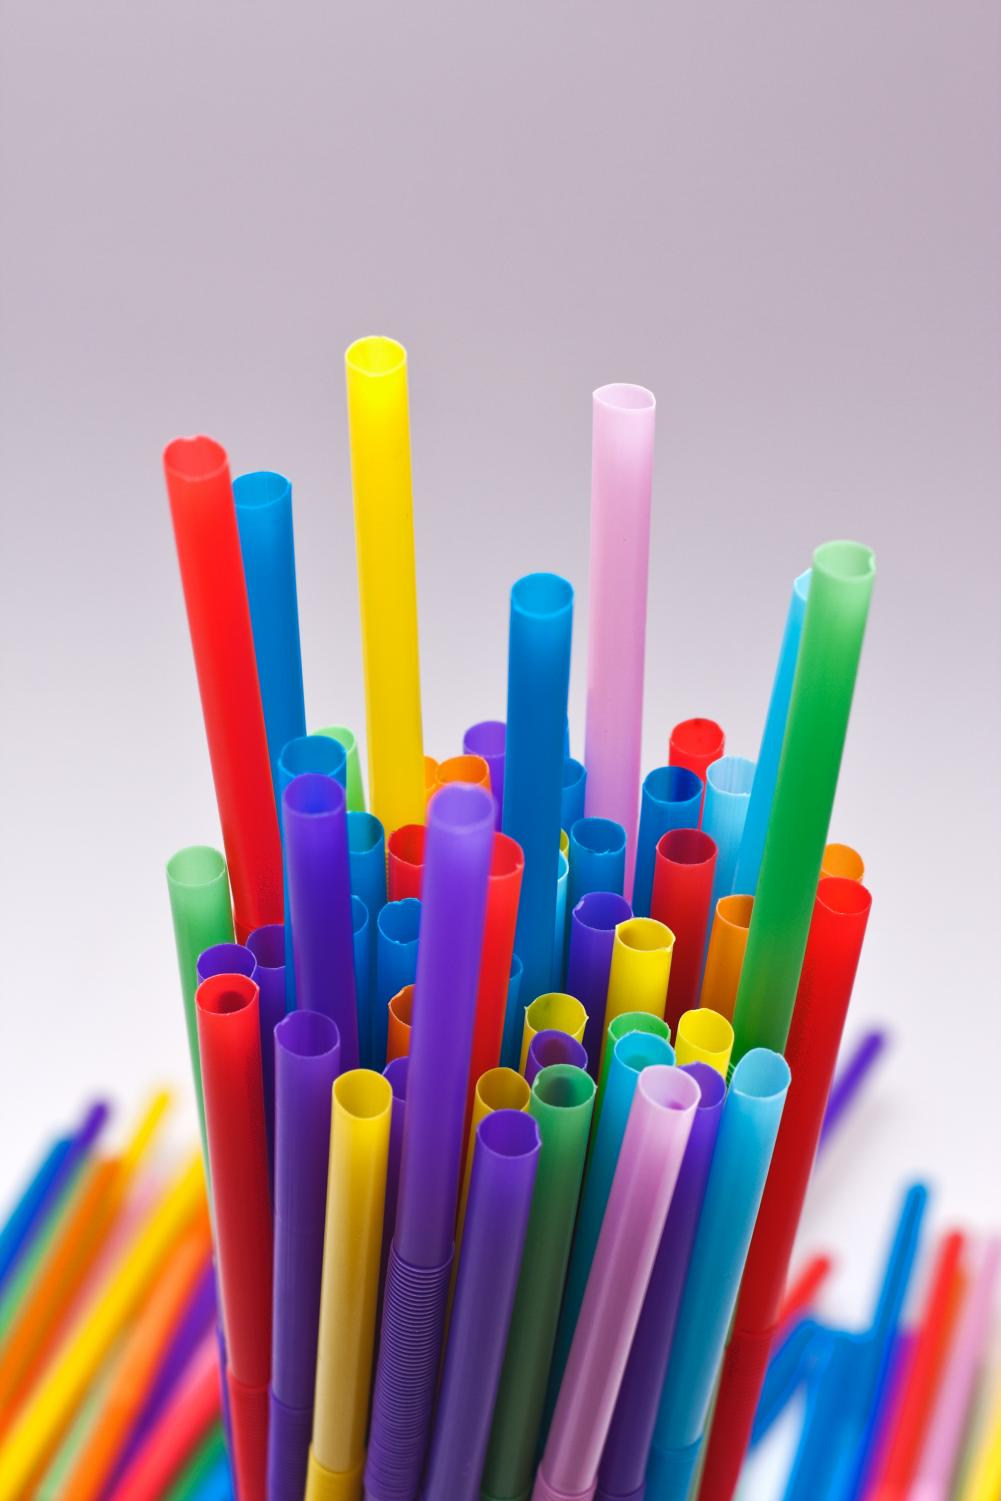 A new bill would ban restaurants from giving out plastic straws to customers unless requested.